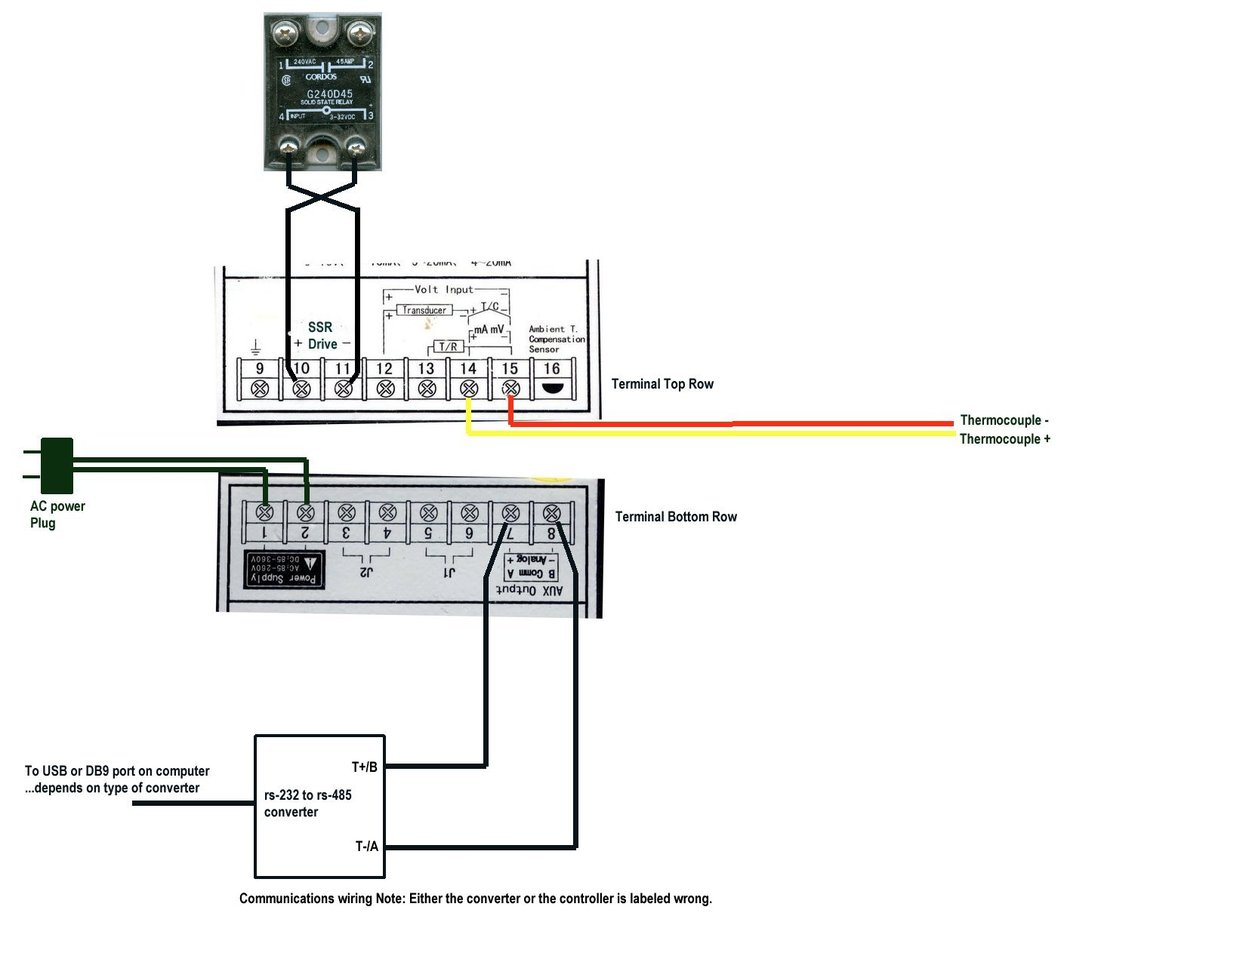 Wiring The Jld 612 Pid Controller With Solid State Relay Auto Jld612 Diagram Wire Switch In As Shown Below